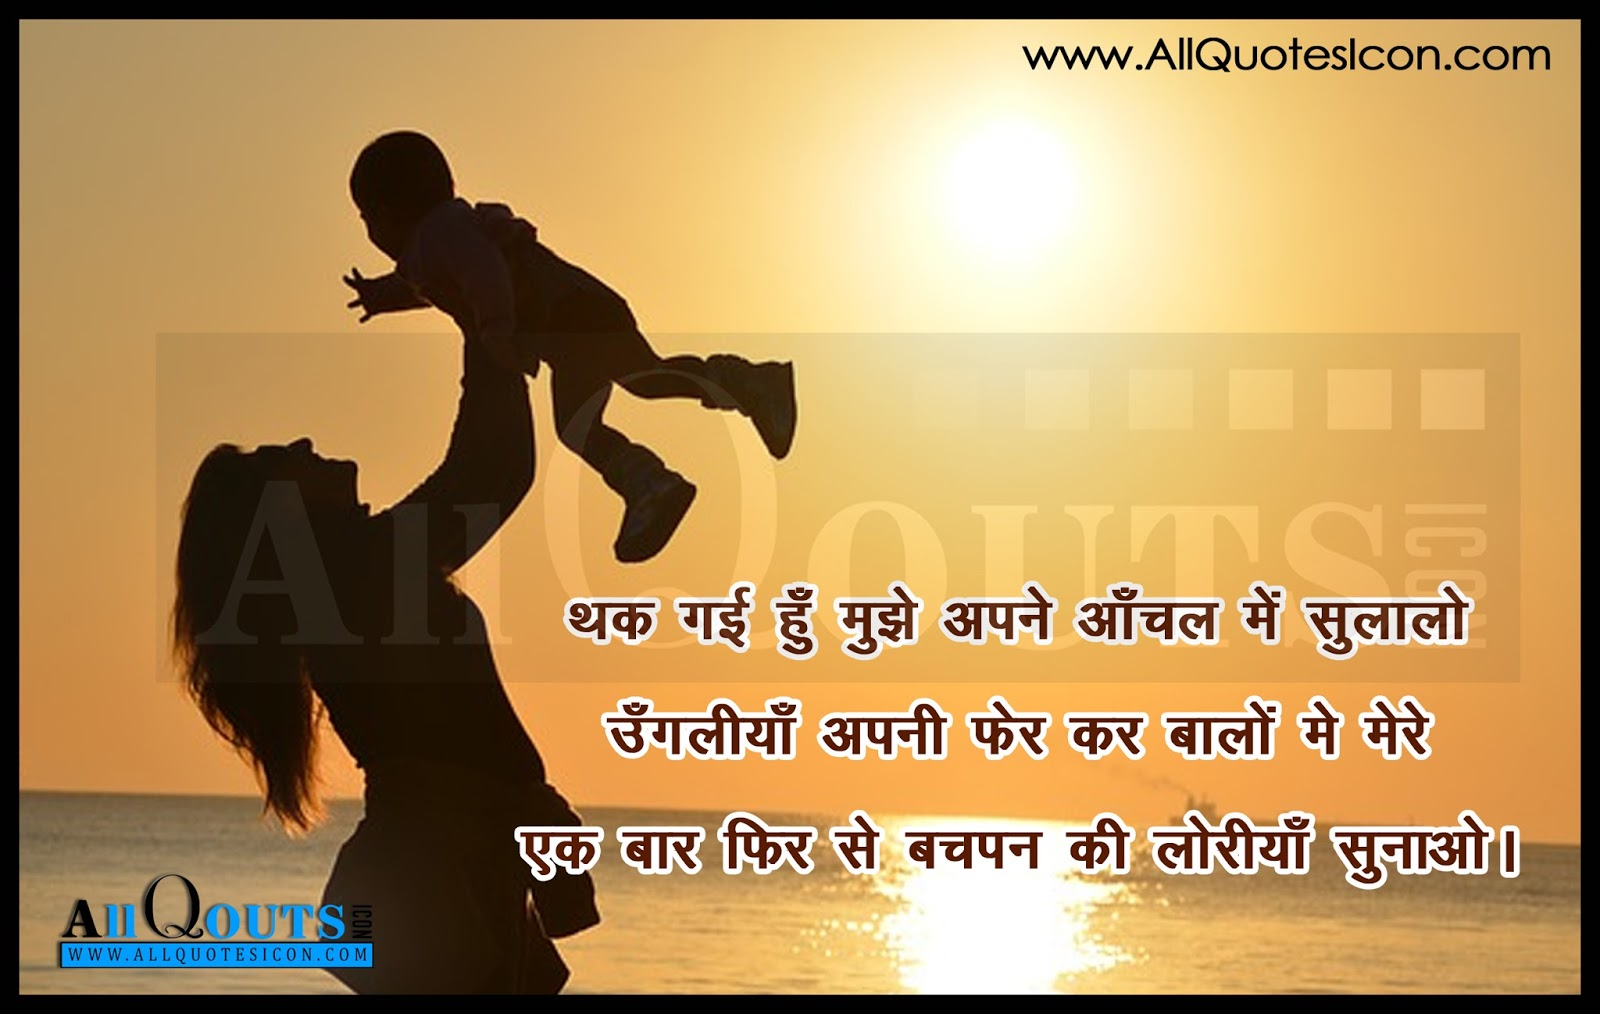 Top Mother Quotes In Hindi Hd Wallpapers Life Motivational Messages